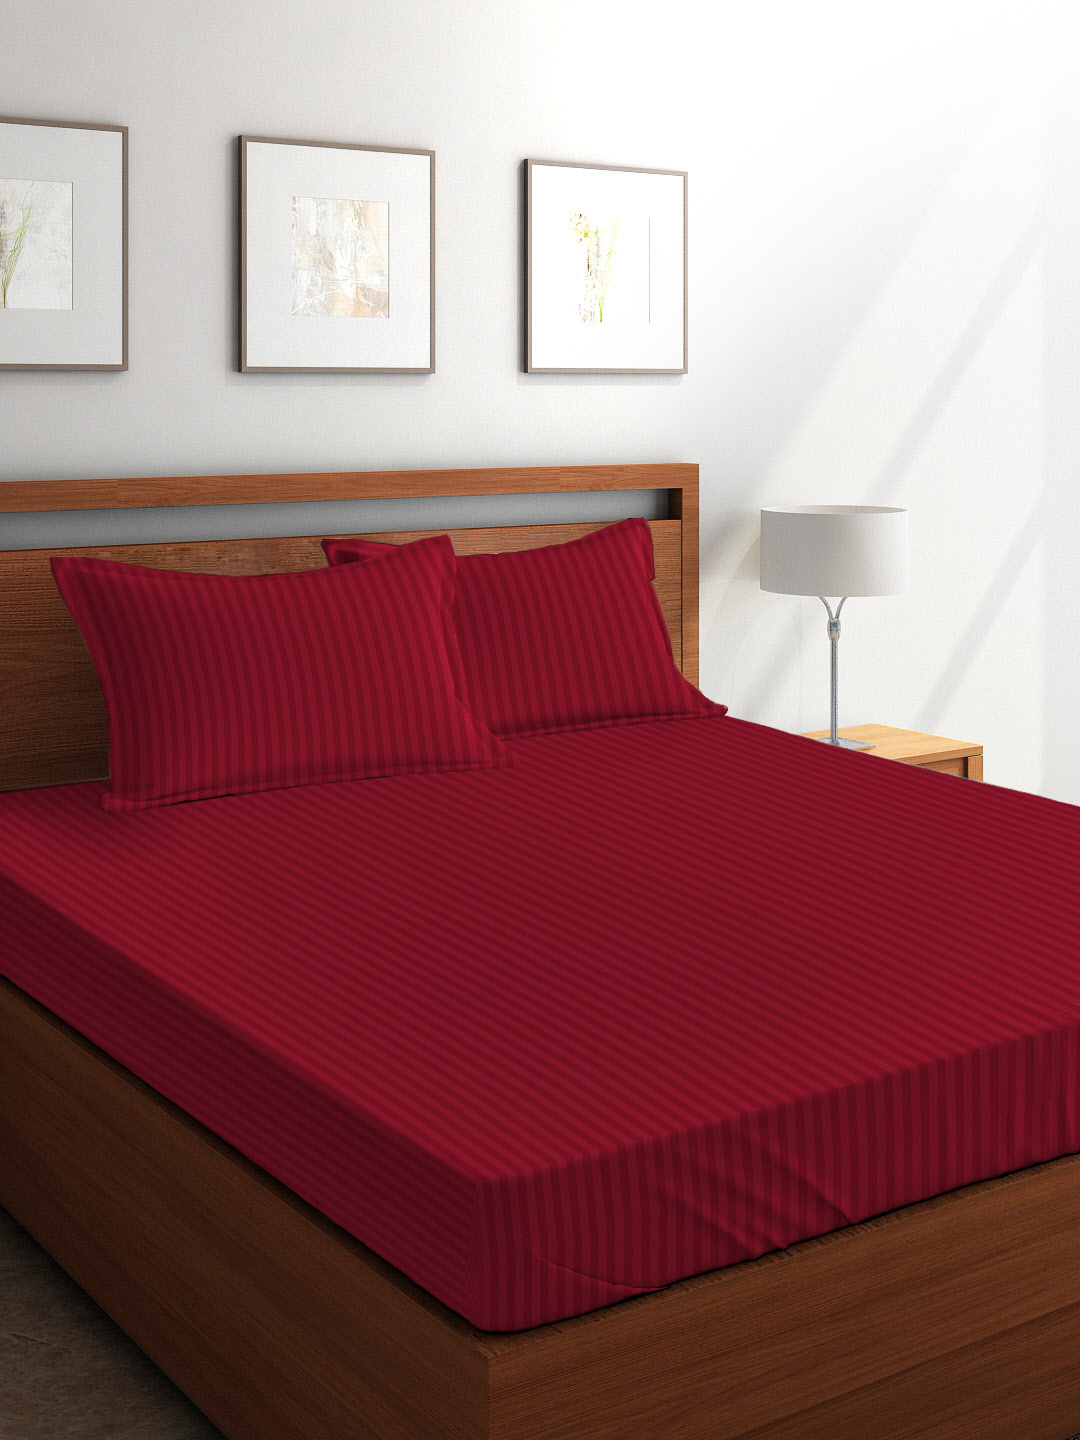 Tangerine Weaved Cotton Double Bed Sheets in Maroon Colour by Tangerine